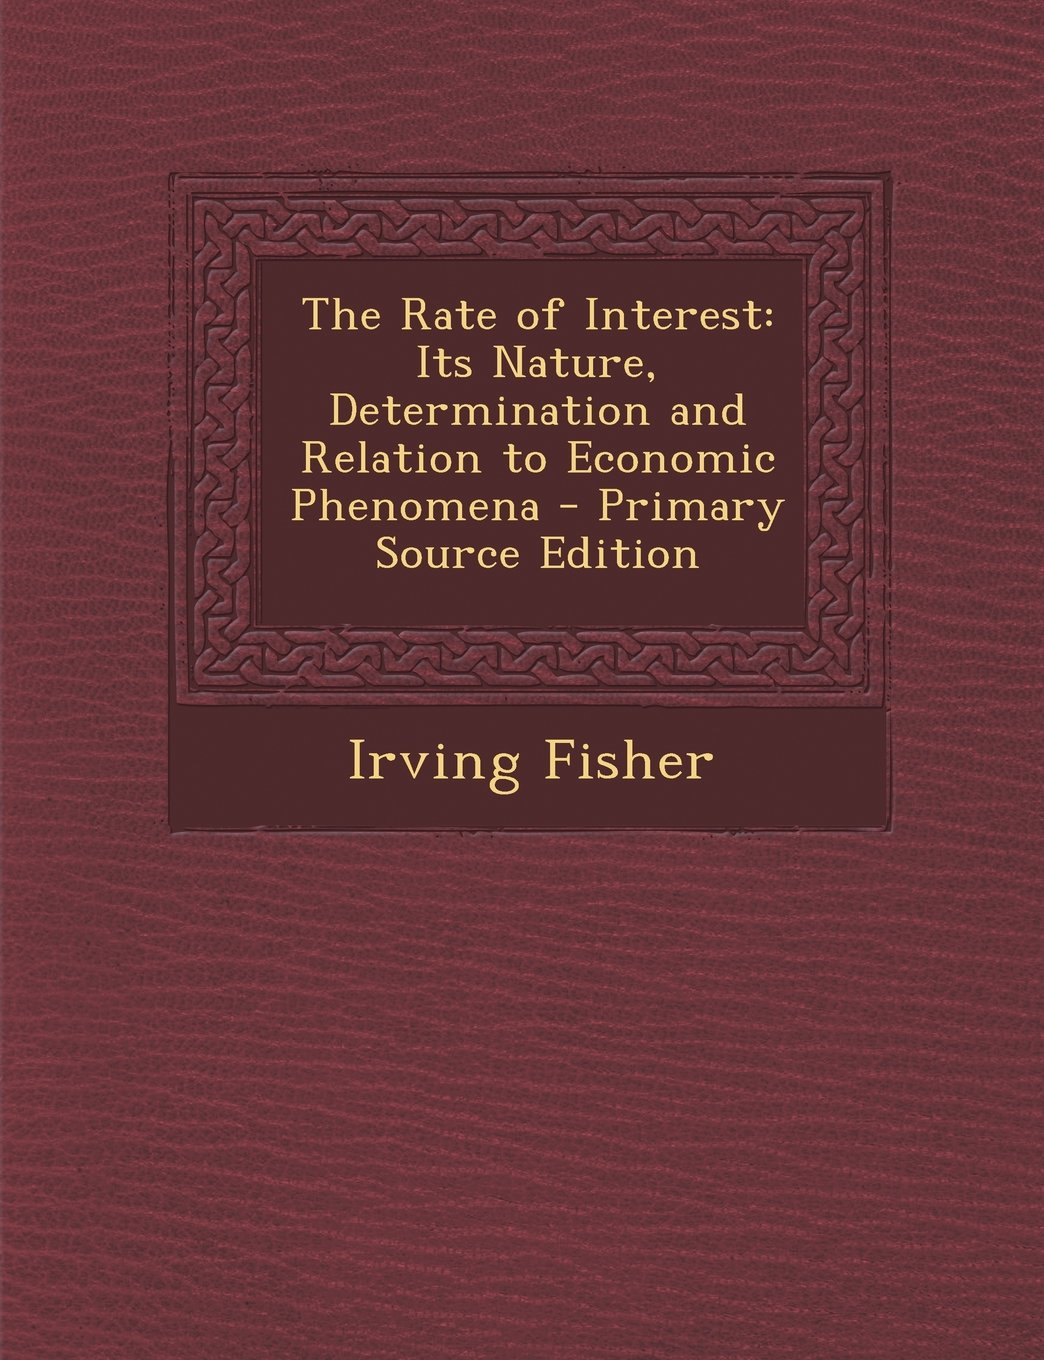 The Rate of Interest: Its Nature, Determination and Relation to Economic Phenomena - Primary Source Edition